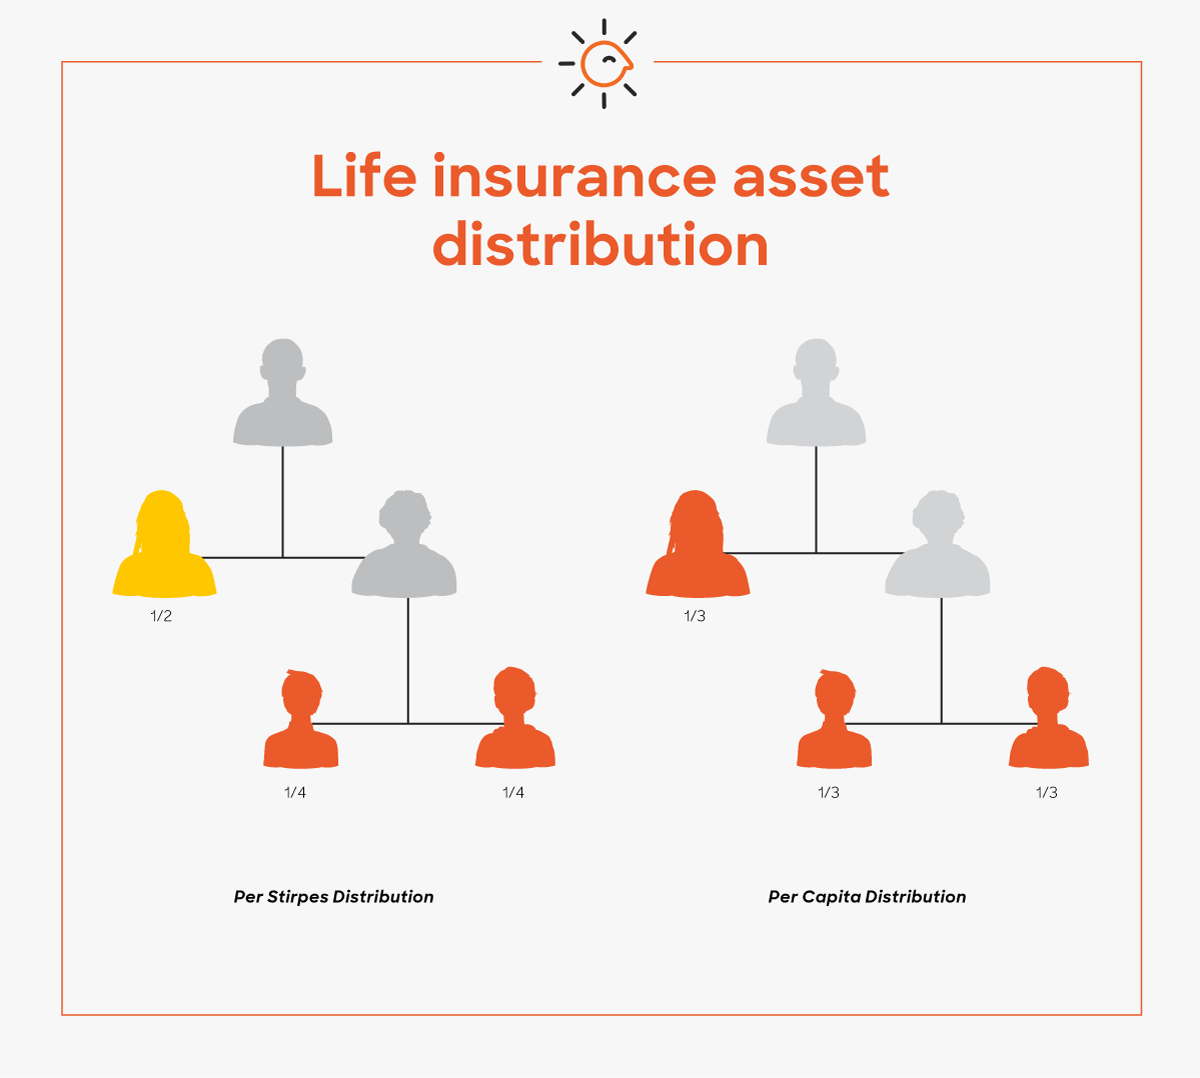 The life insurance death benefit will be distributed depending on how you have your beneficiaries set up. This will also affect what happens to assets if a beneficiary dies.